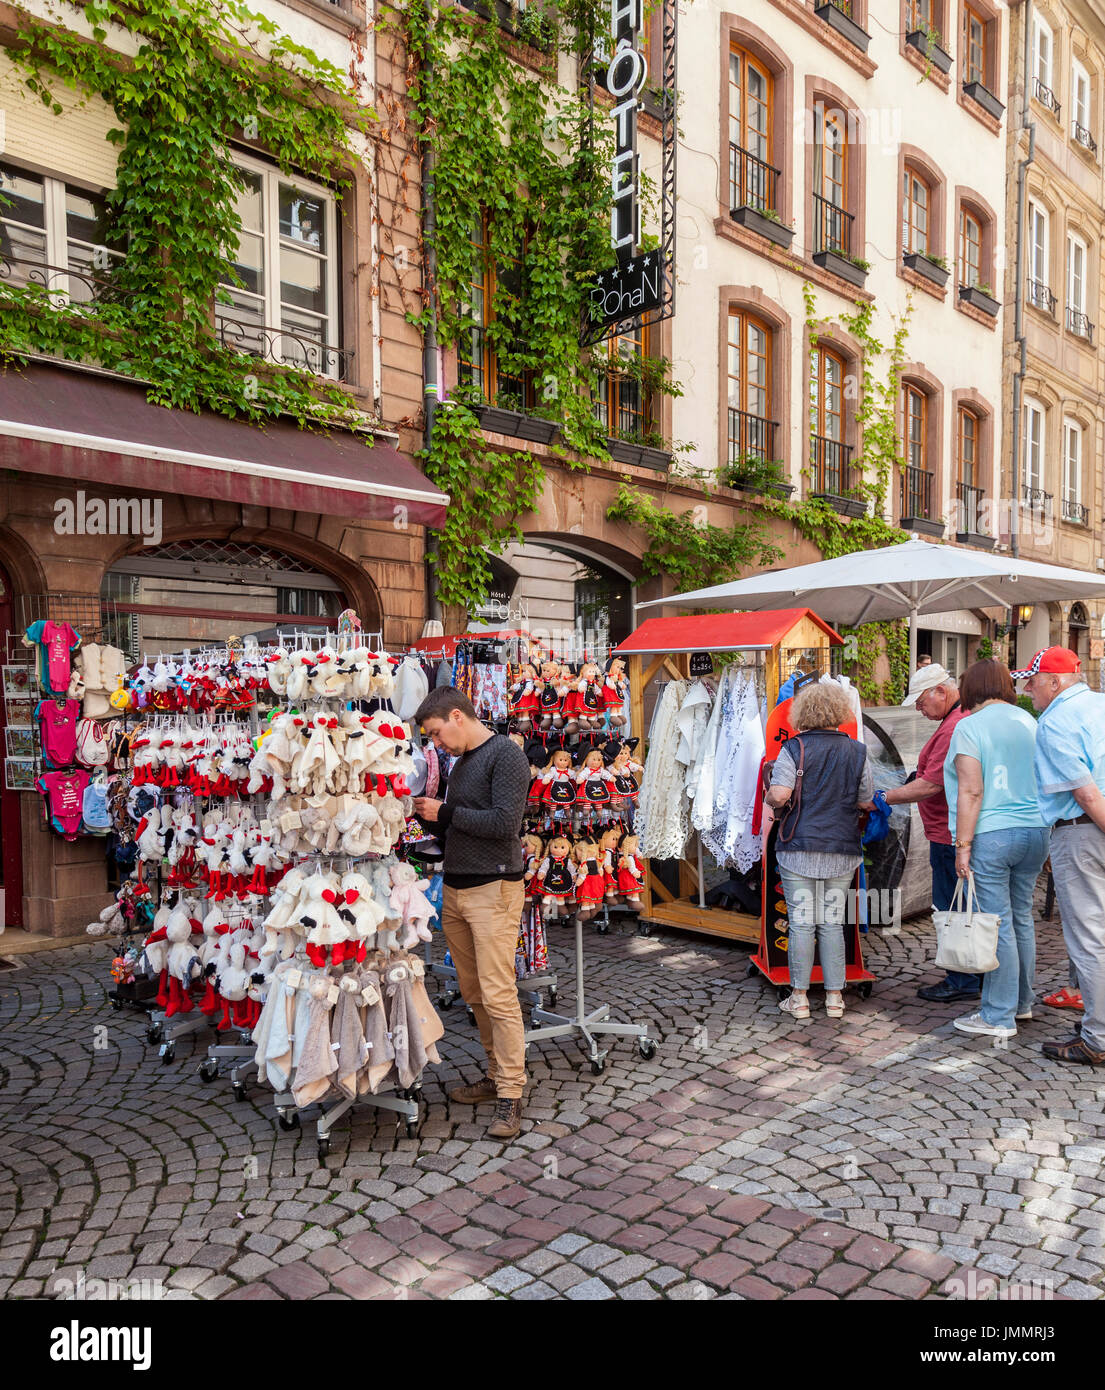 Tourists in Rue du Maroquin, Strasbourg, browsing typical gifts from Alsace outside Le Petit Alsacien gift shop. Hotel Rohan entrance in background. - Stock Image